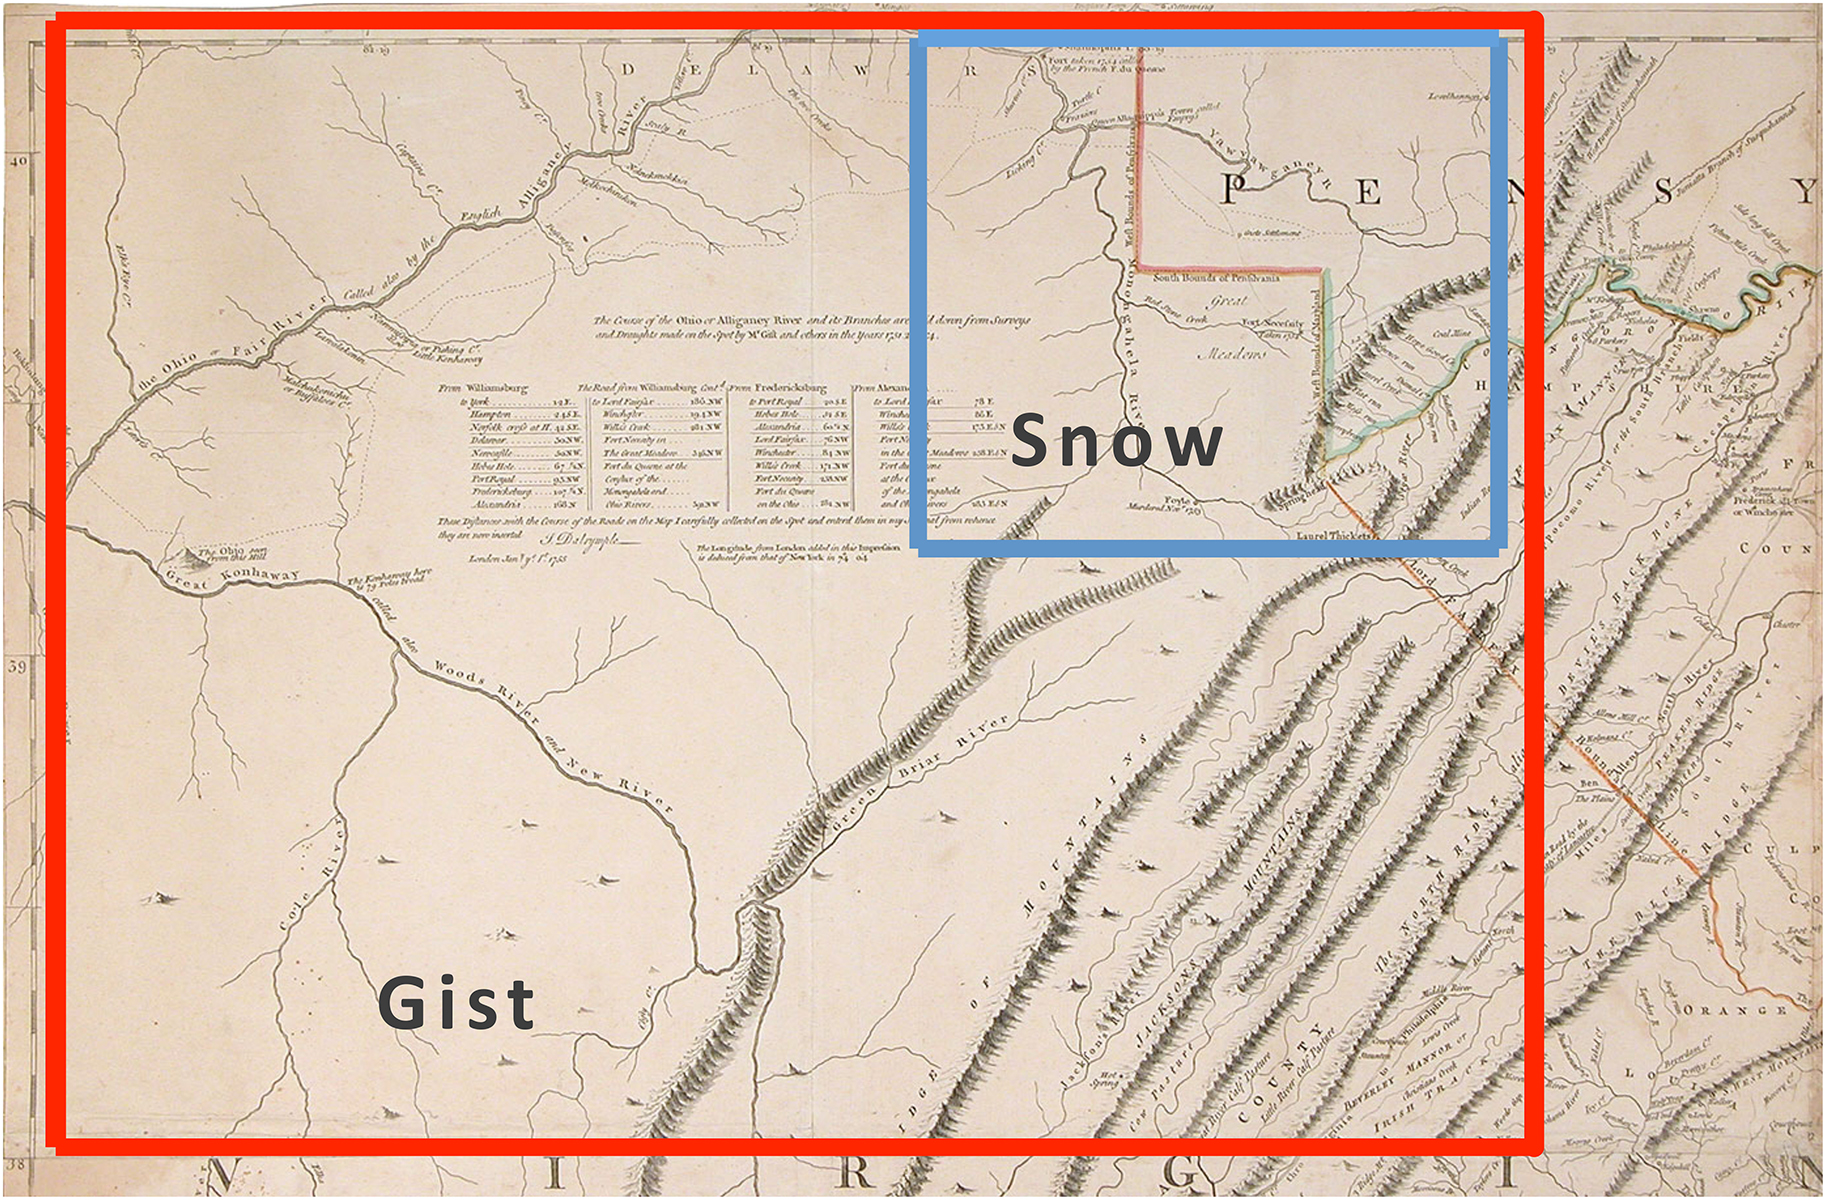 Fig 22 Regions Compiled From Information Provided By Christopher Gist And Captain Snow